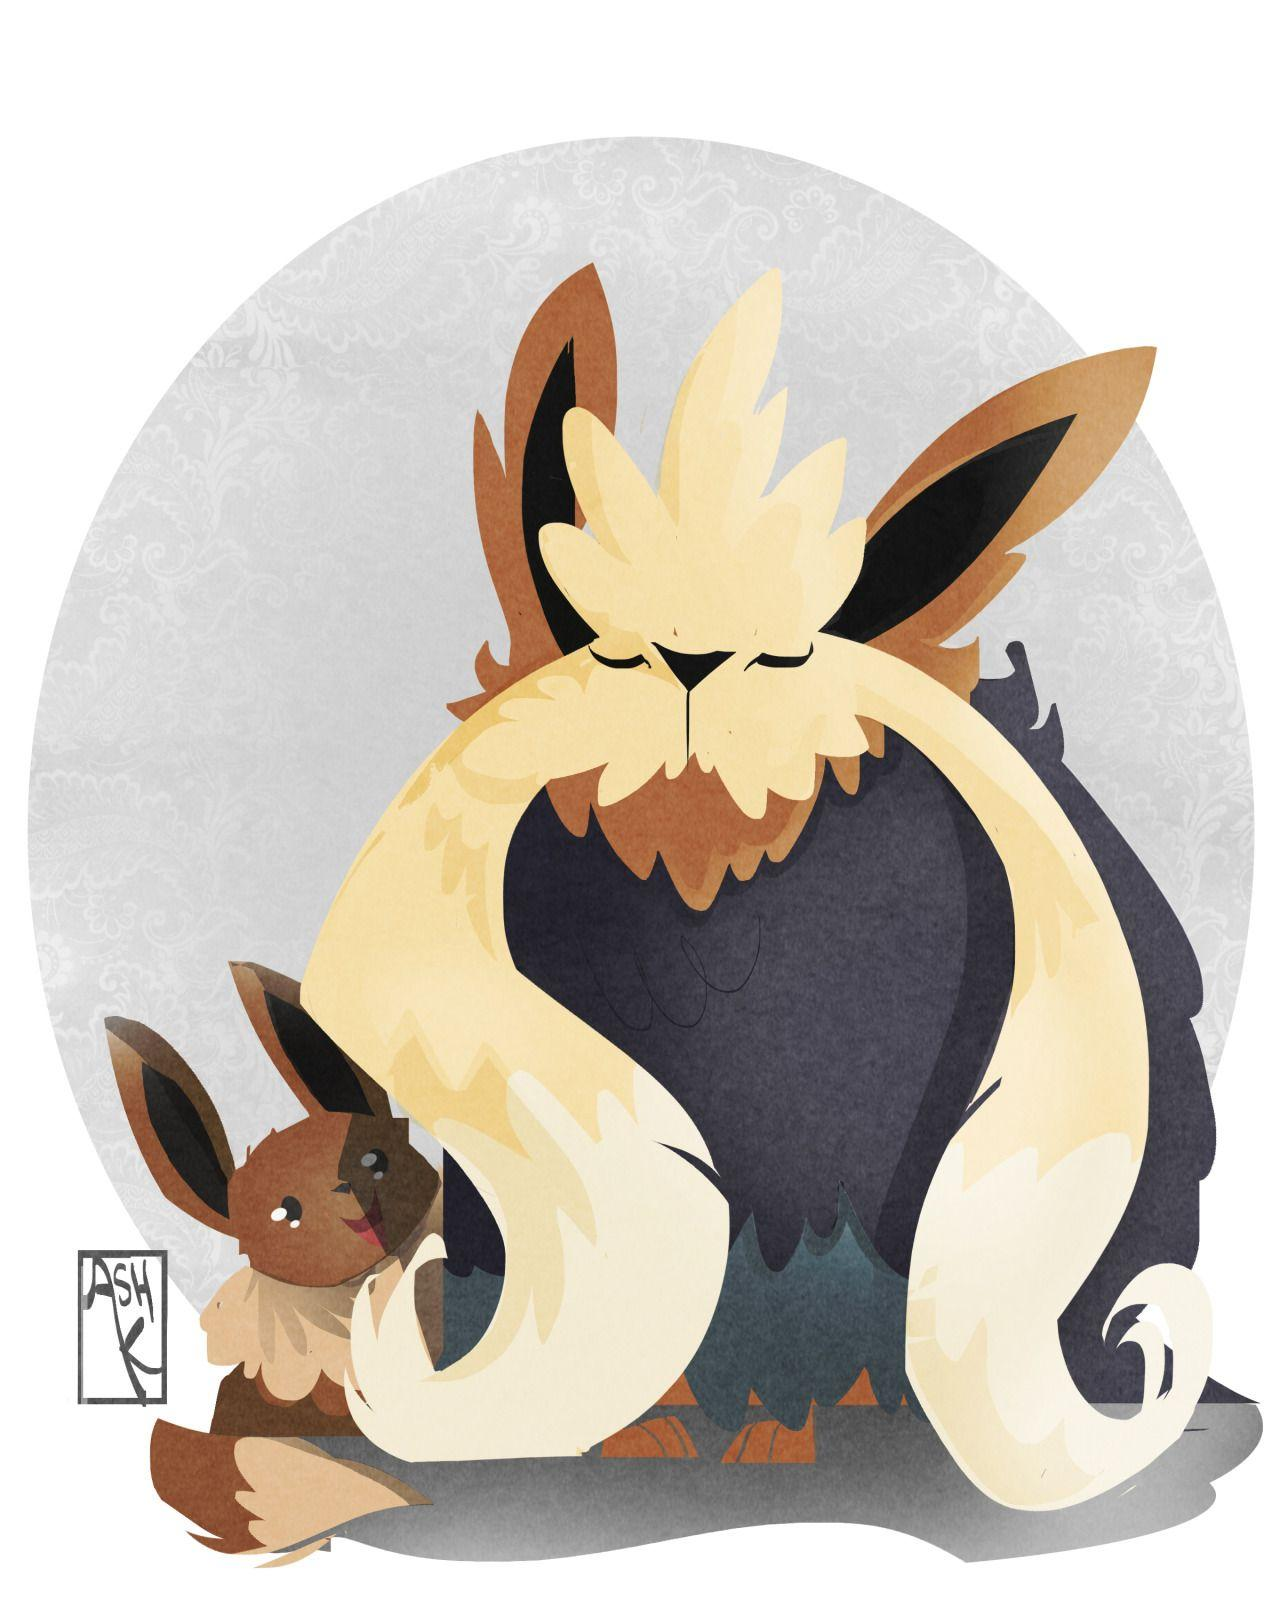 Favorite Normal Type - Stoutland & Eevee ... Drawn by AshK's ...